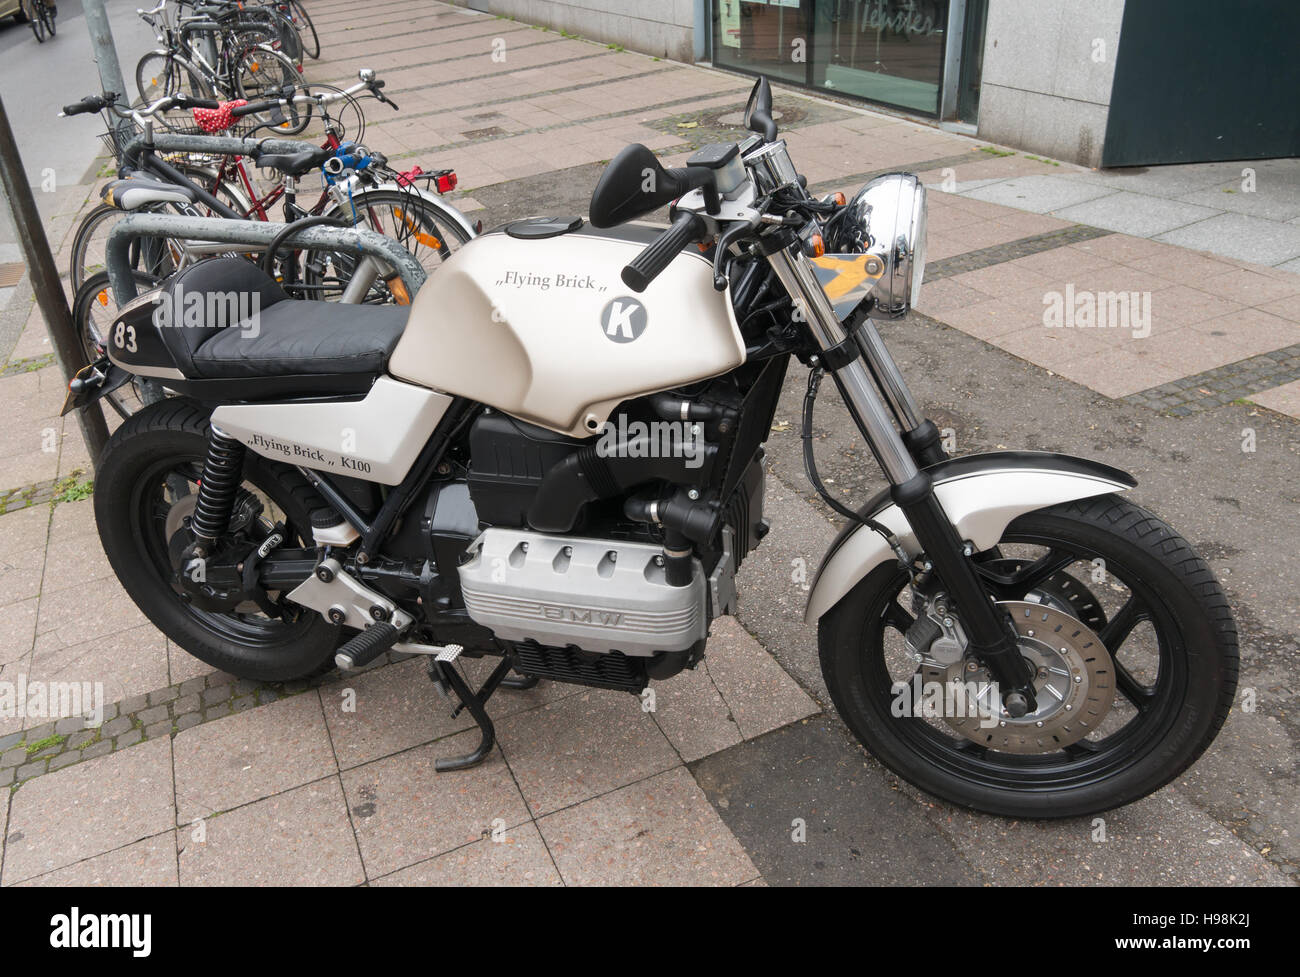 bmw k100 flying brick motorbike stock photo, royalty free image